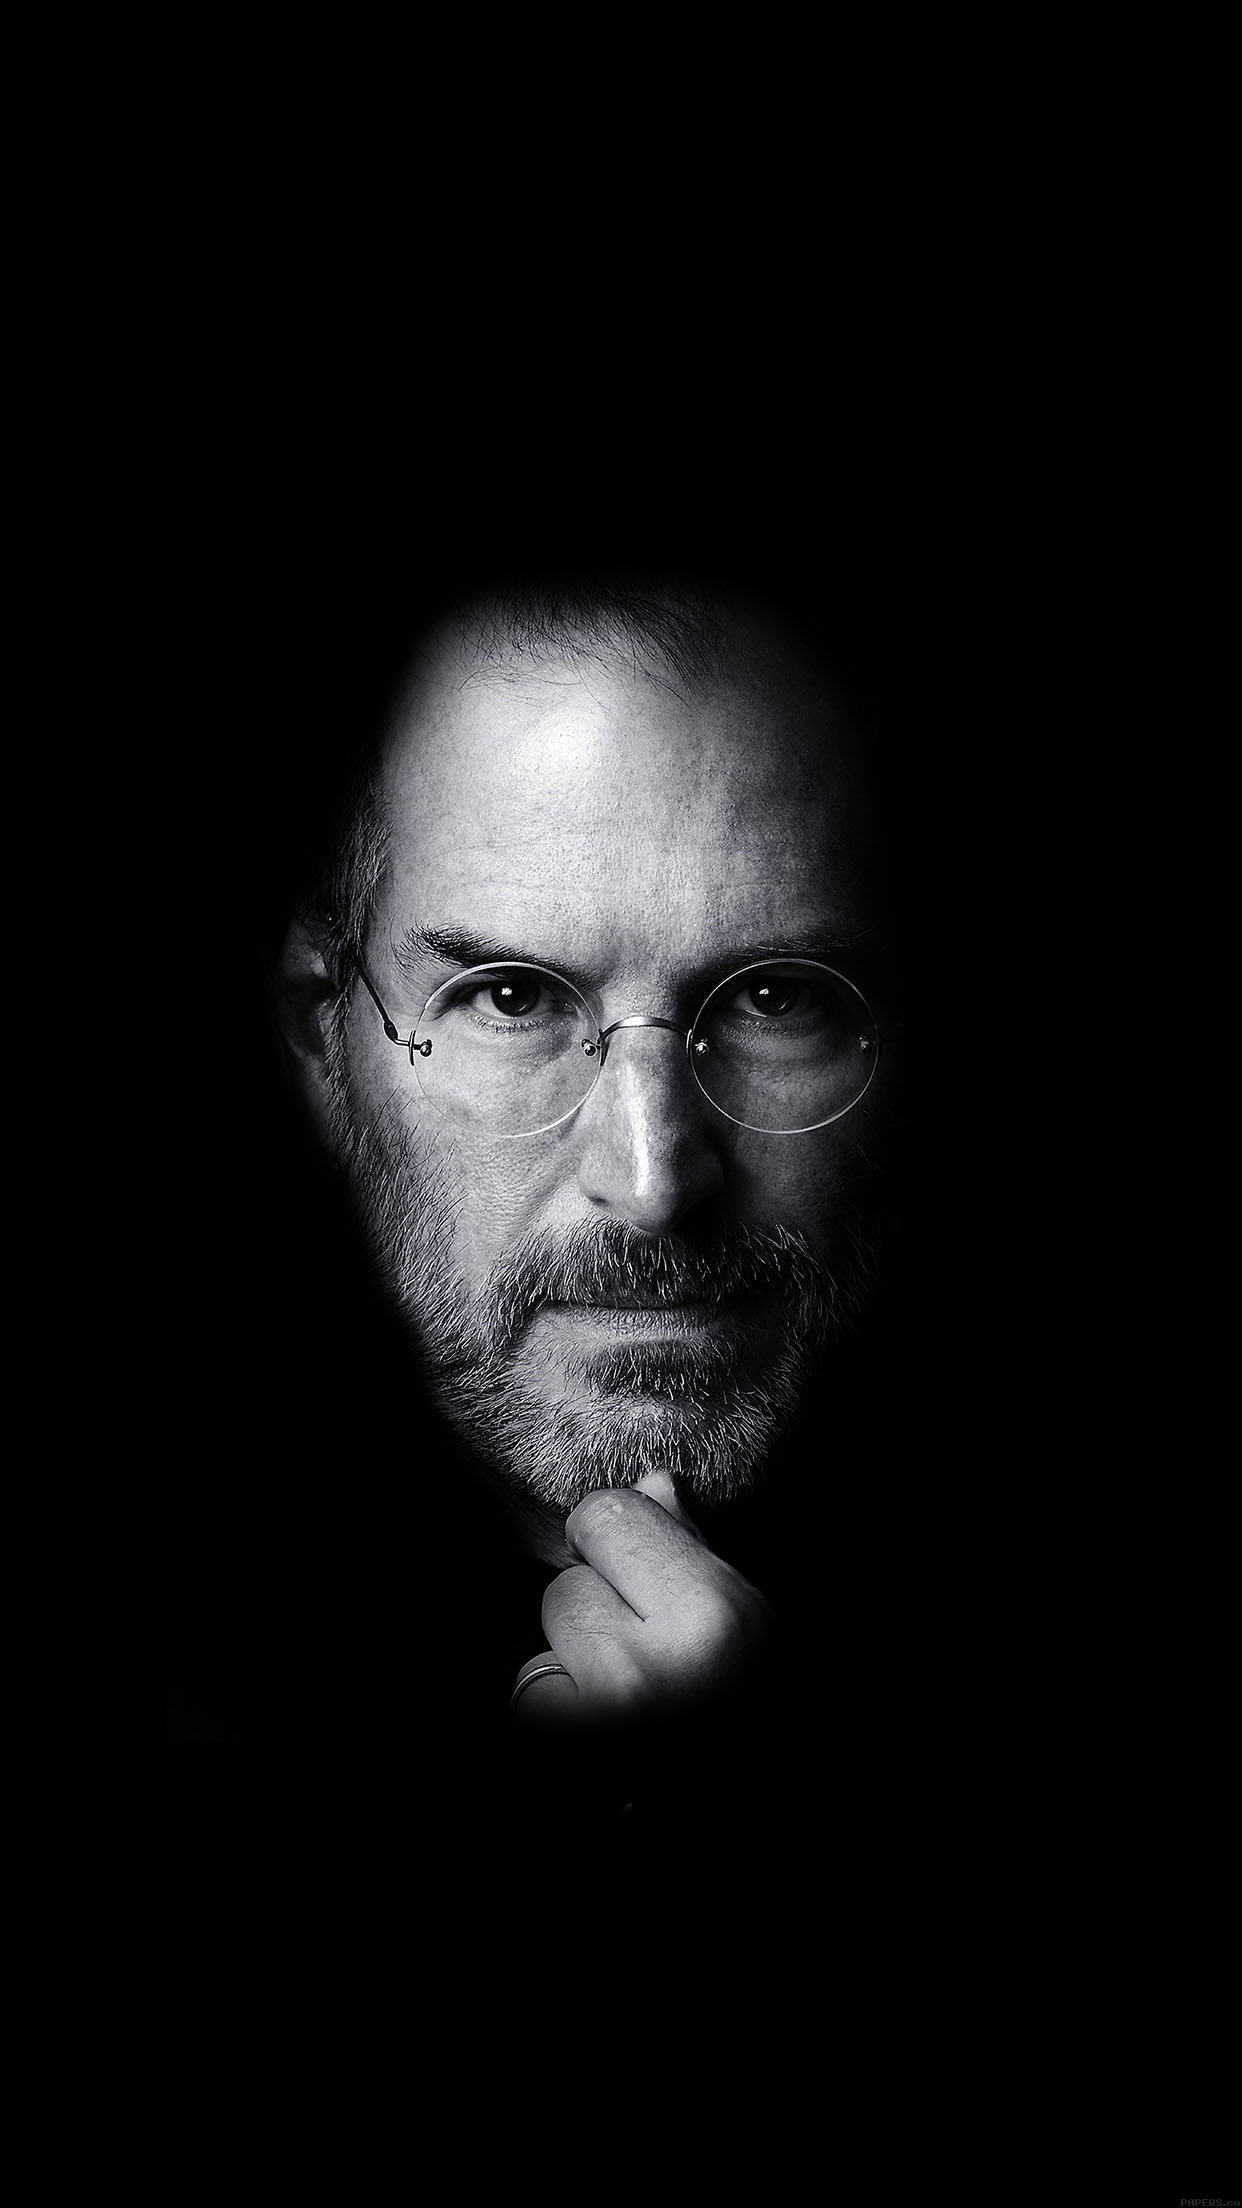 Steves Wallpaper   Steve Jobs tribute wallpapers for iPhone 6 and 1242x2208